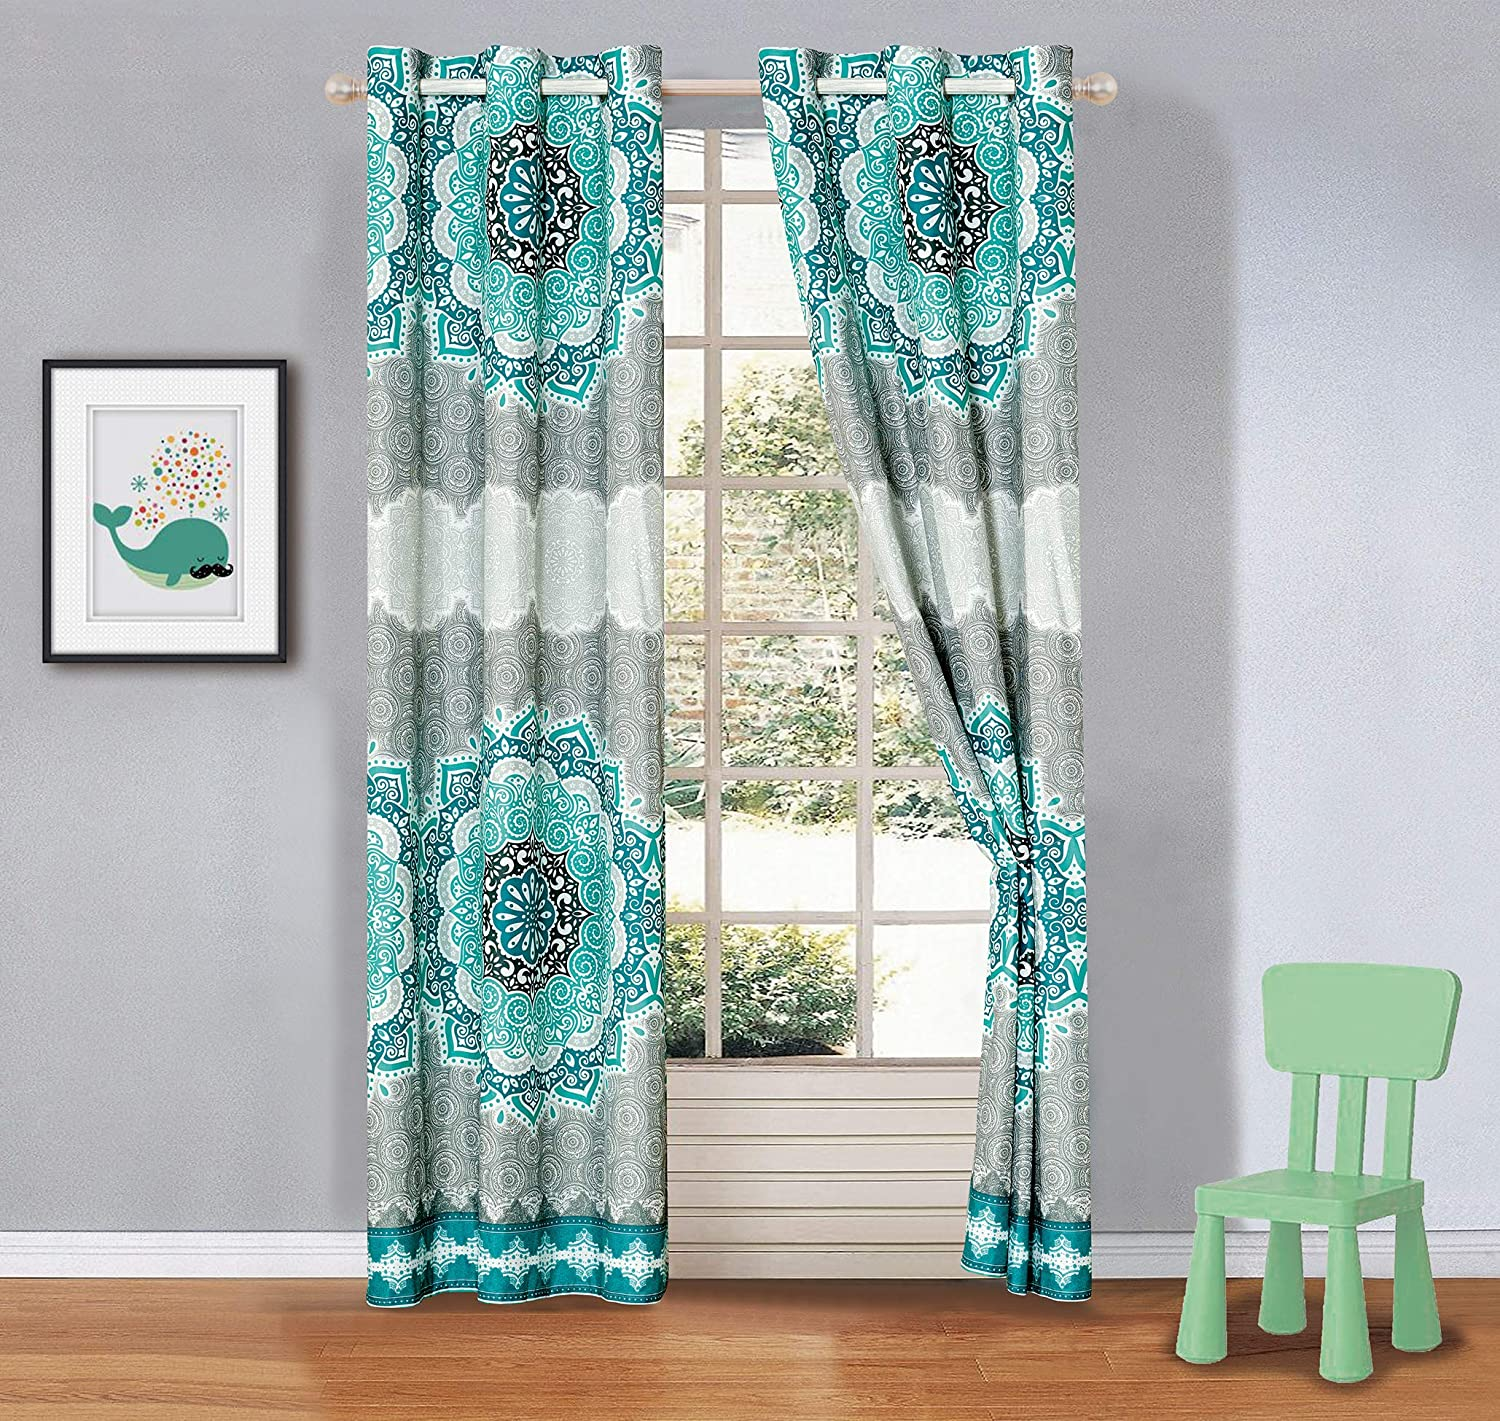 Mk Collection 2 Panel Curtain Set Aqua Turquoise Coastal Plain Grey Green White Elegant Design # Oslo Aqua